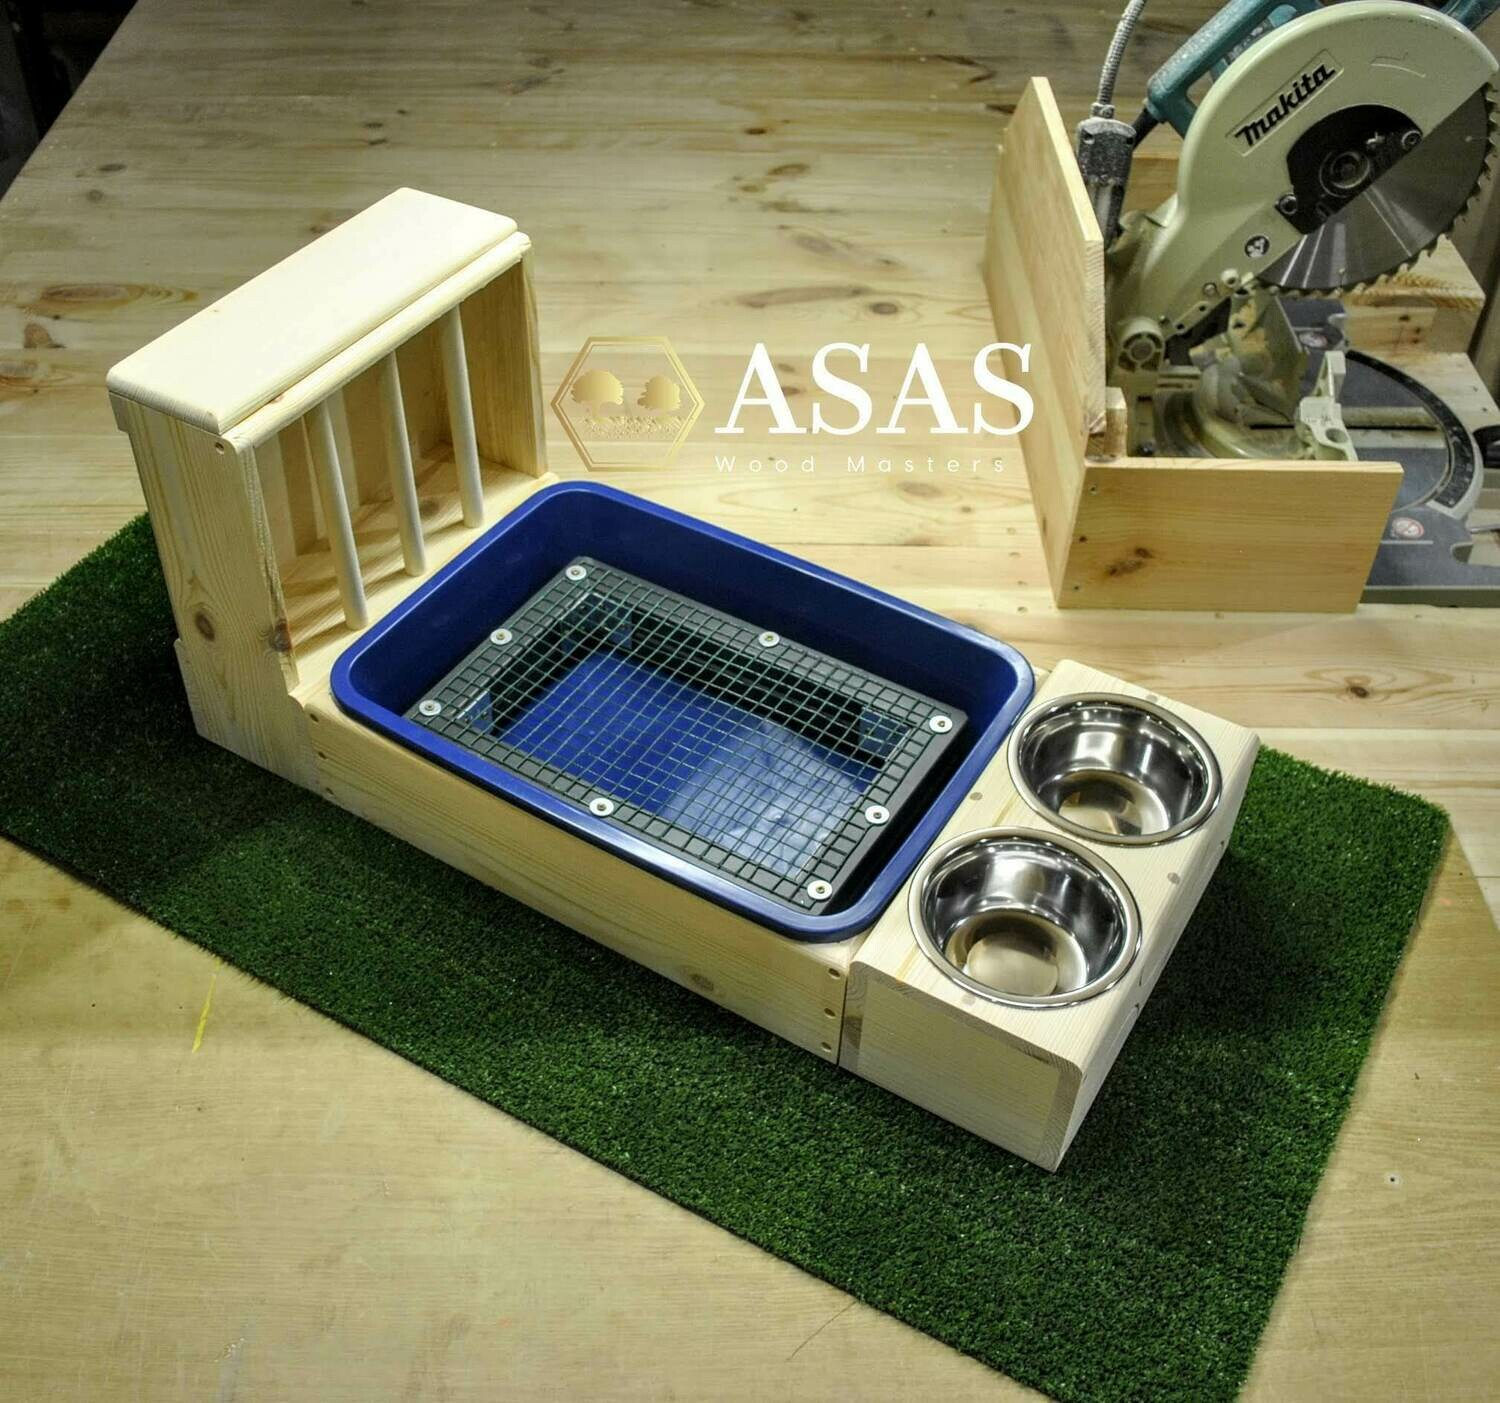 Rabbit Hay Feeder With Litter Box, Food/drink bowls stand and Wire mesh